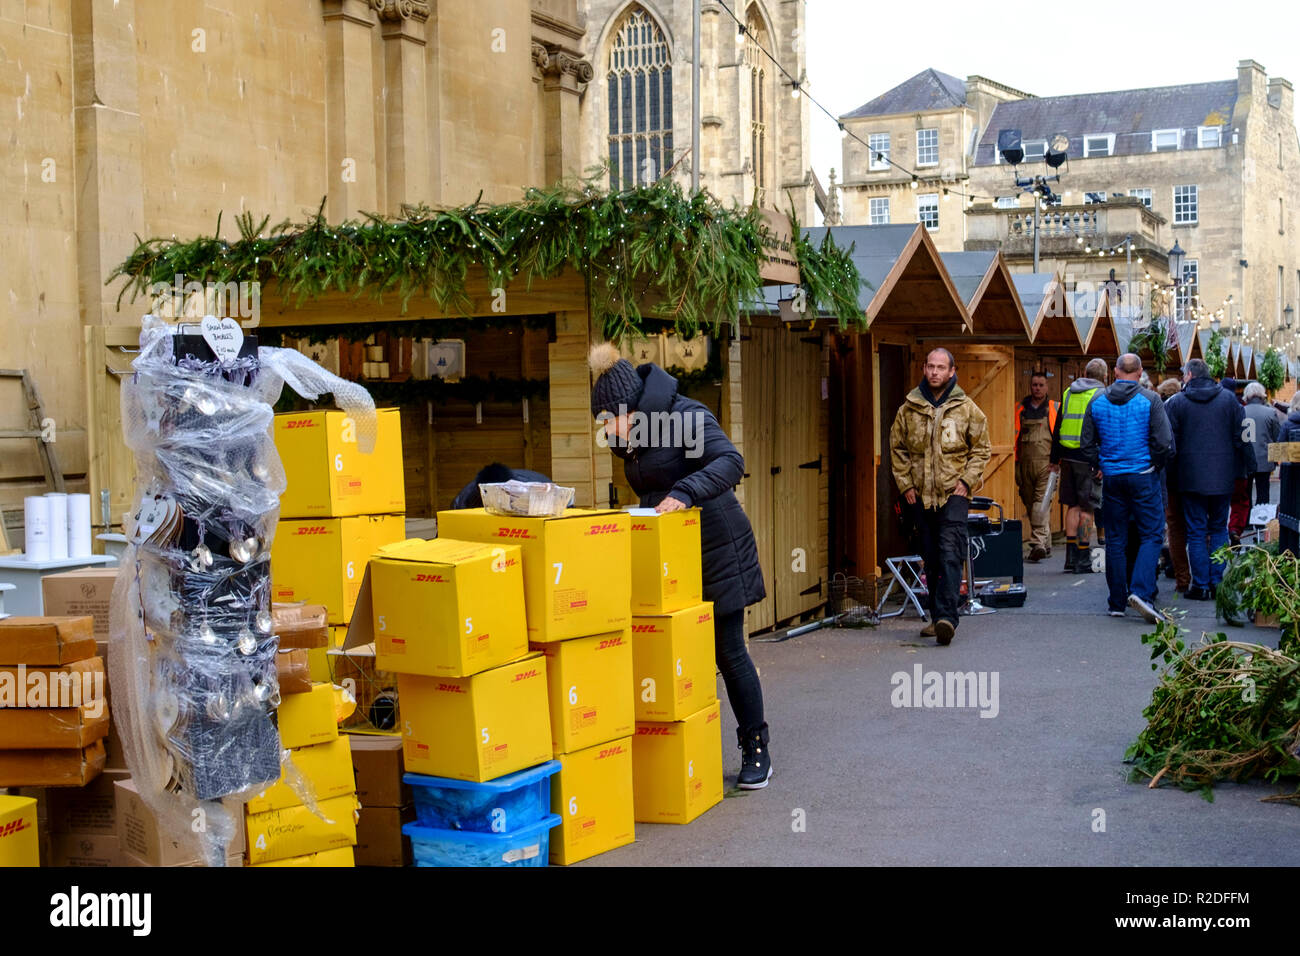 Bath, UK. 19th Nov 2018. Stalls are being erected and goods unpacked ahead of this years christmas market in Bath. Each year the abbey courtyard and surrounding streets are taken over for the christmas market. The market starts on the 22nd November until 9th Dec. Credit: Mr Standfast/Alamy Live News - Stock Image